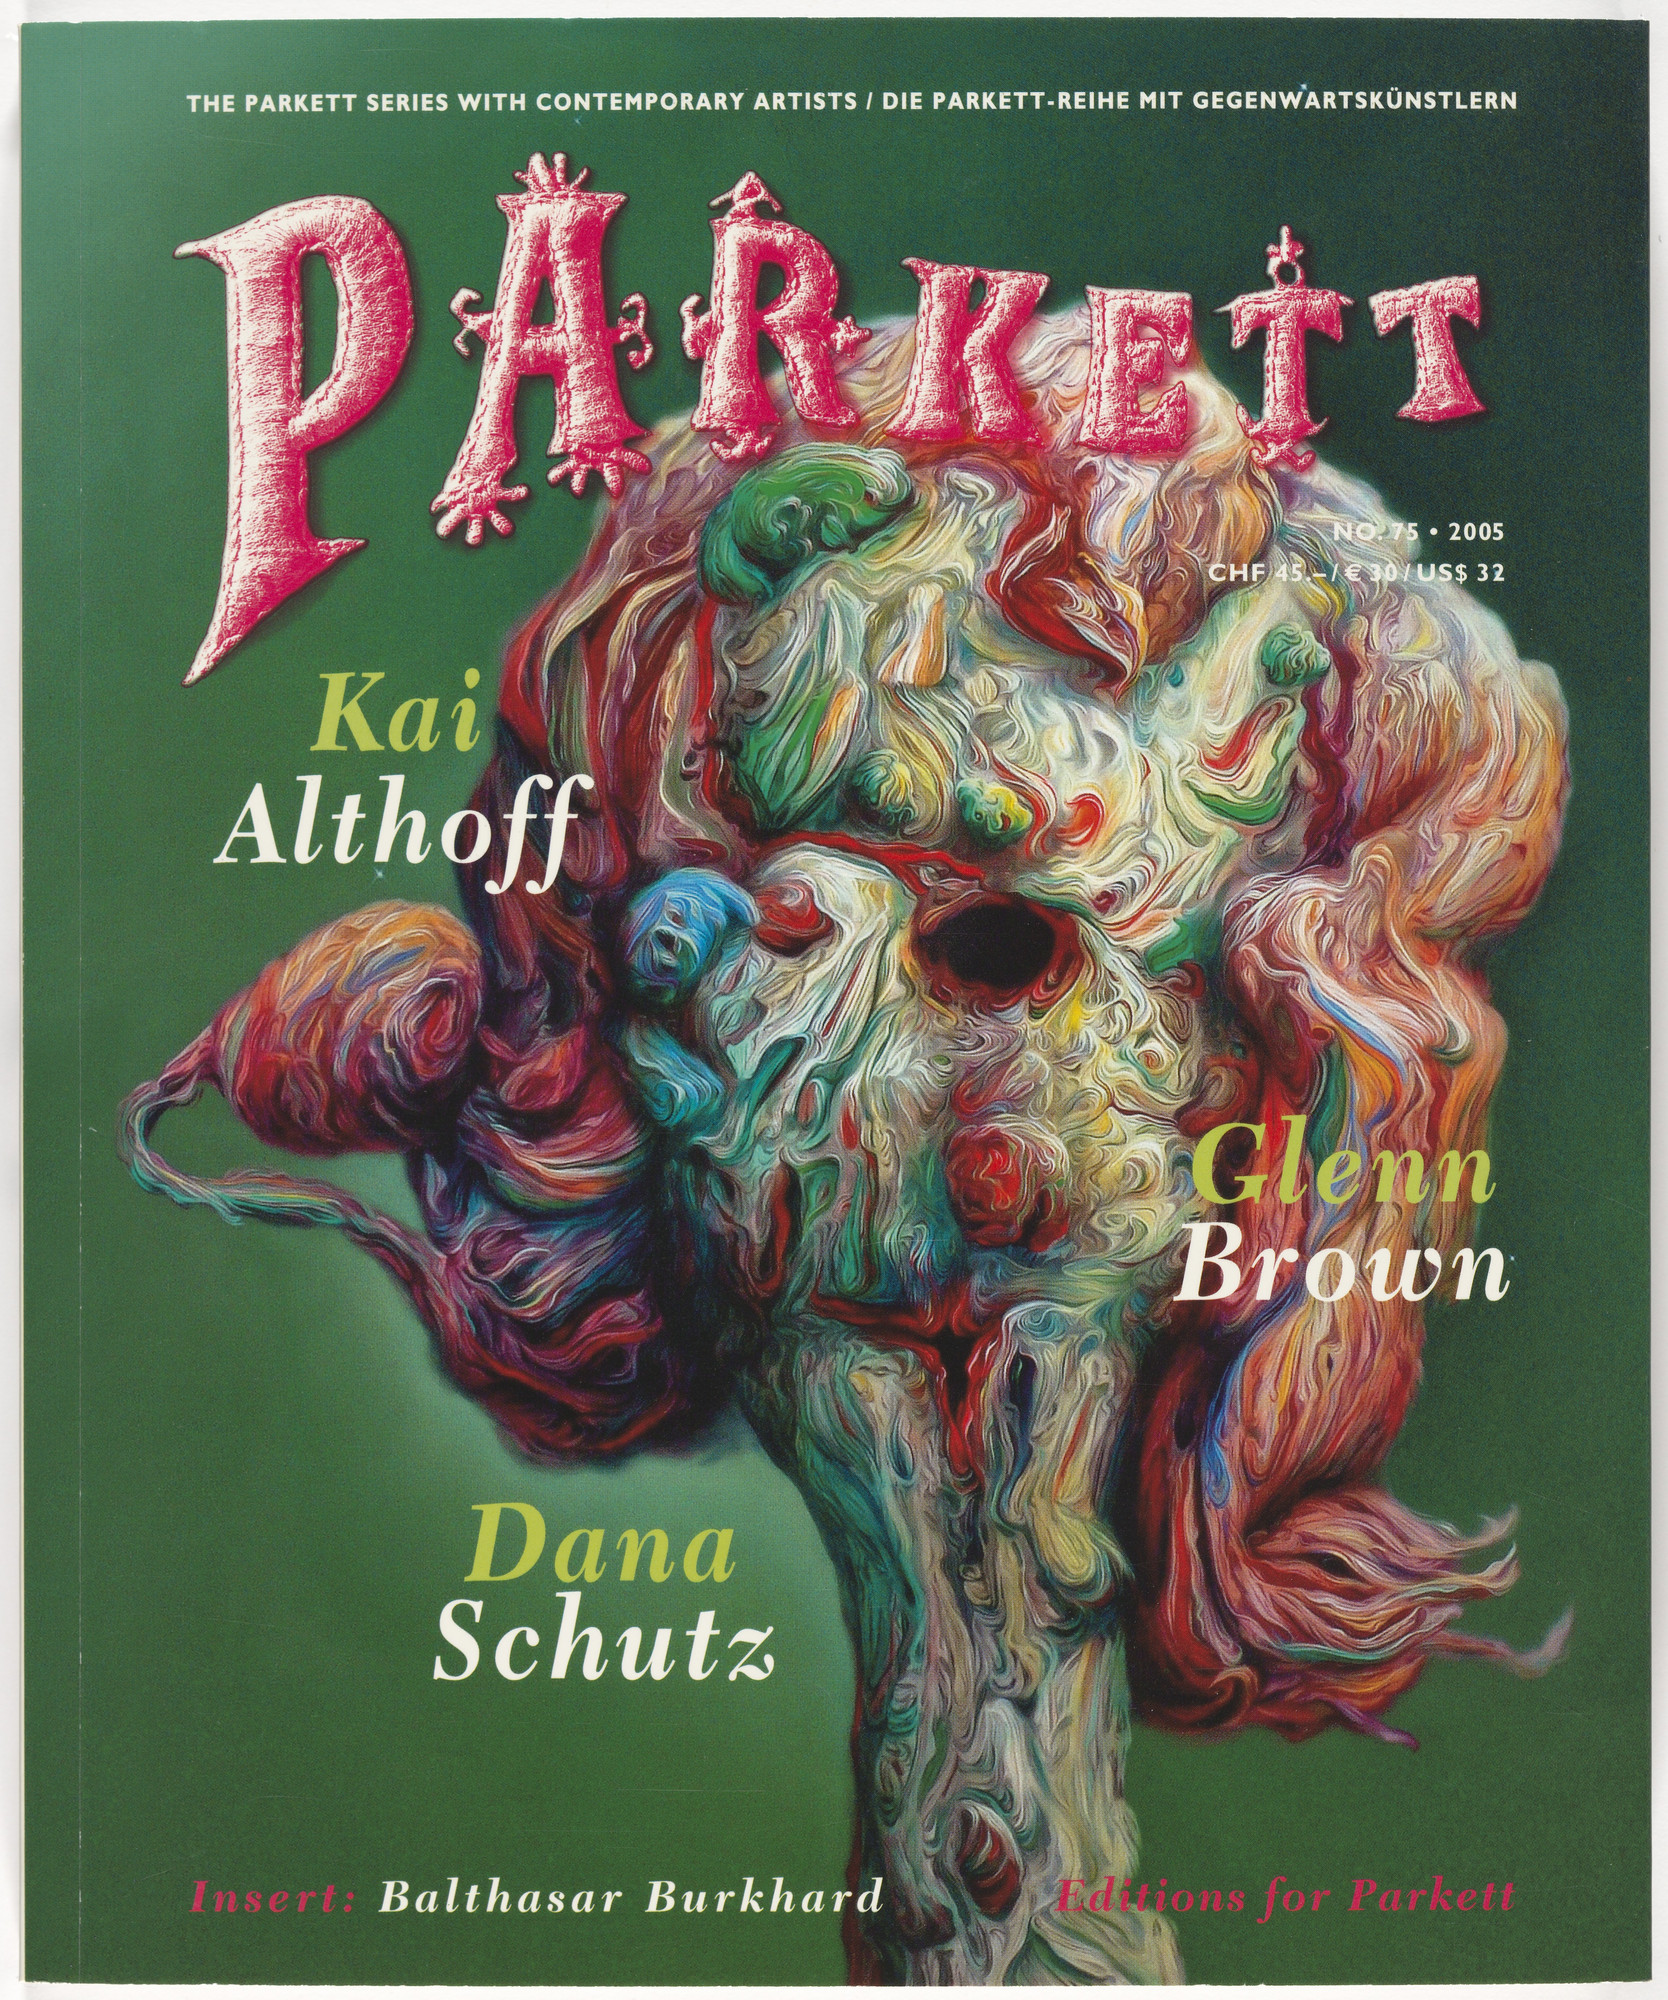 Various Artists, Kai Althoff, Glenn Brown, Dana Schutz, Carsten Nicolai. Parkett no. 75. 2006